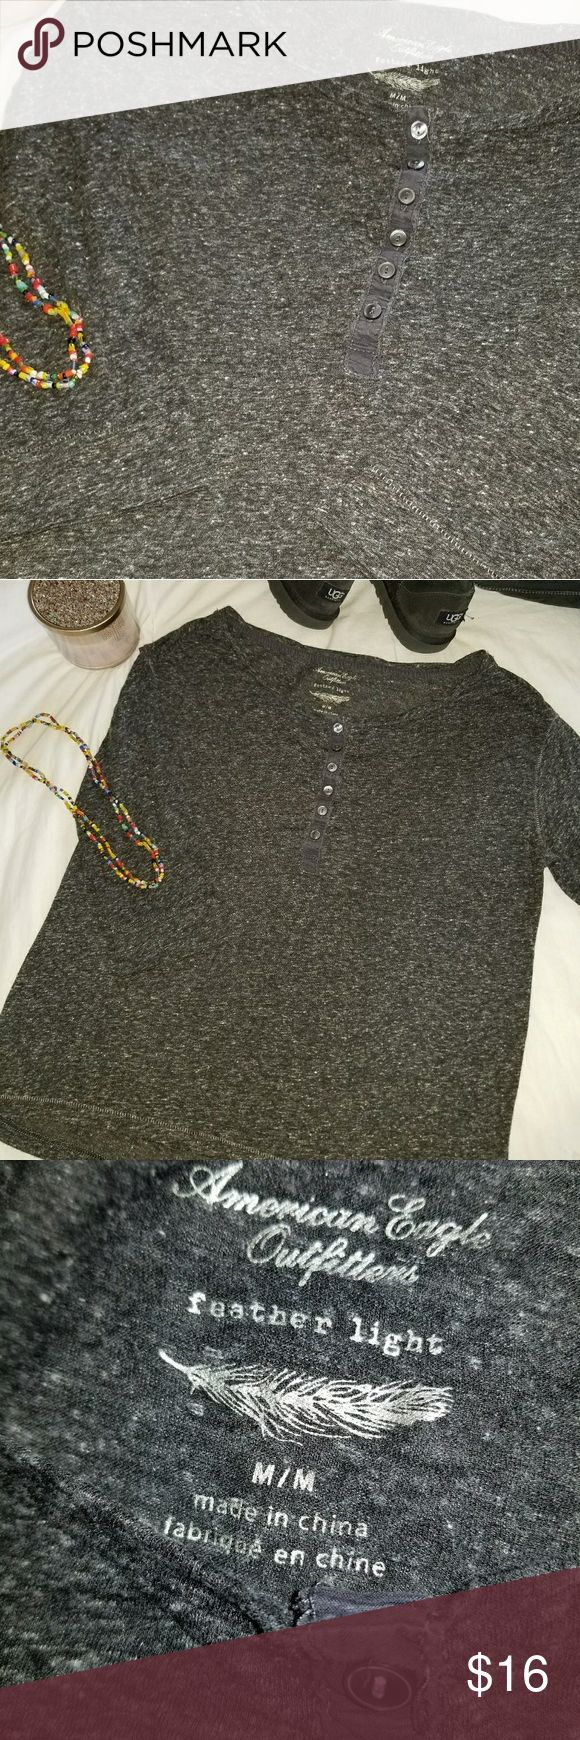 American Eagle Outfitters | Long Sleeved T-shirt ☆ American Eagle Outfitters ☆ Dark gray ☆ Scoop neck with buttons ☆ Long sleeves American Eagle Outfitters Tops Tees - Long Sleeve